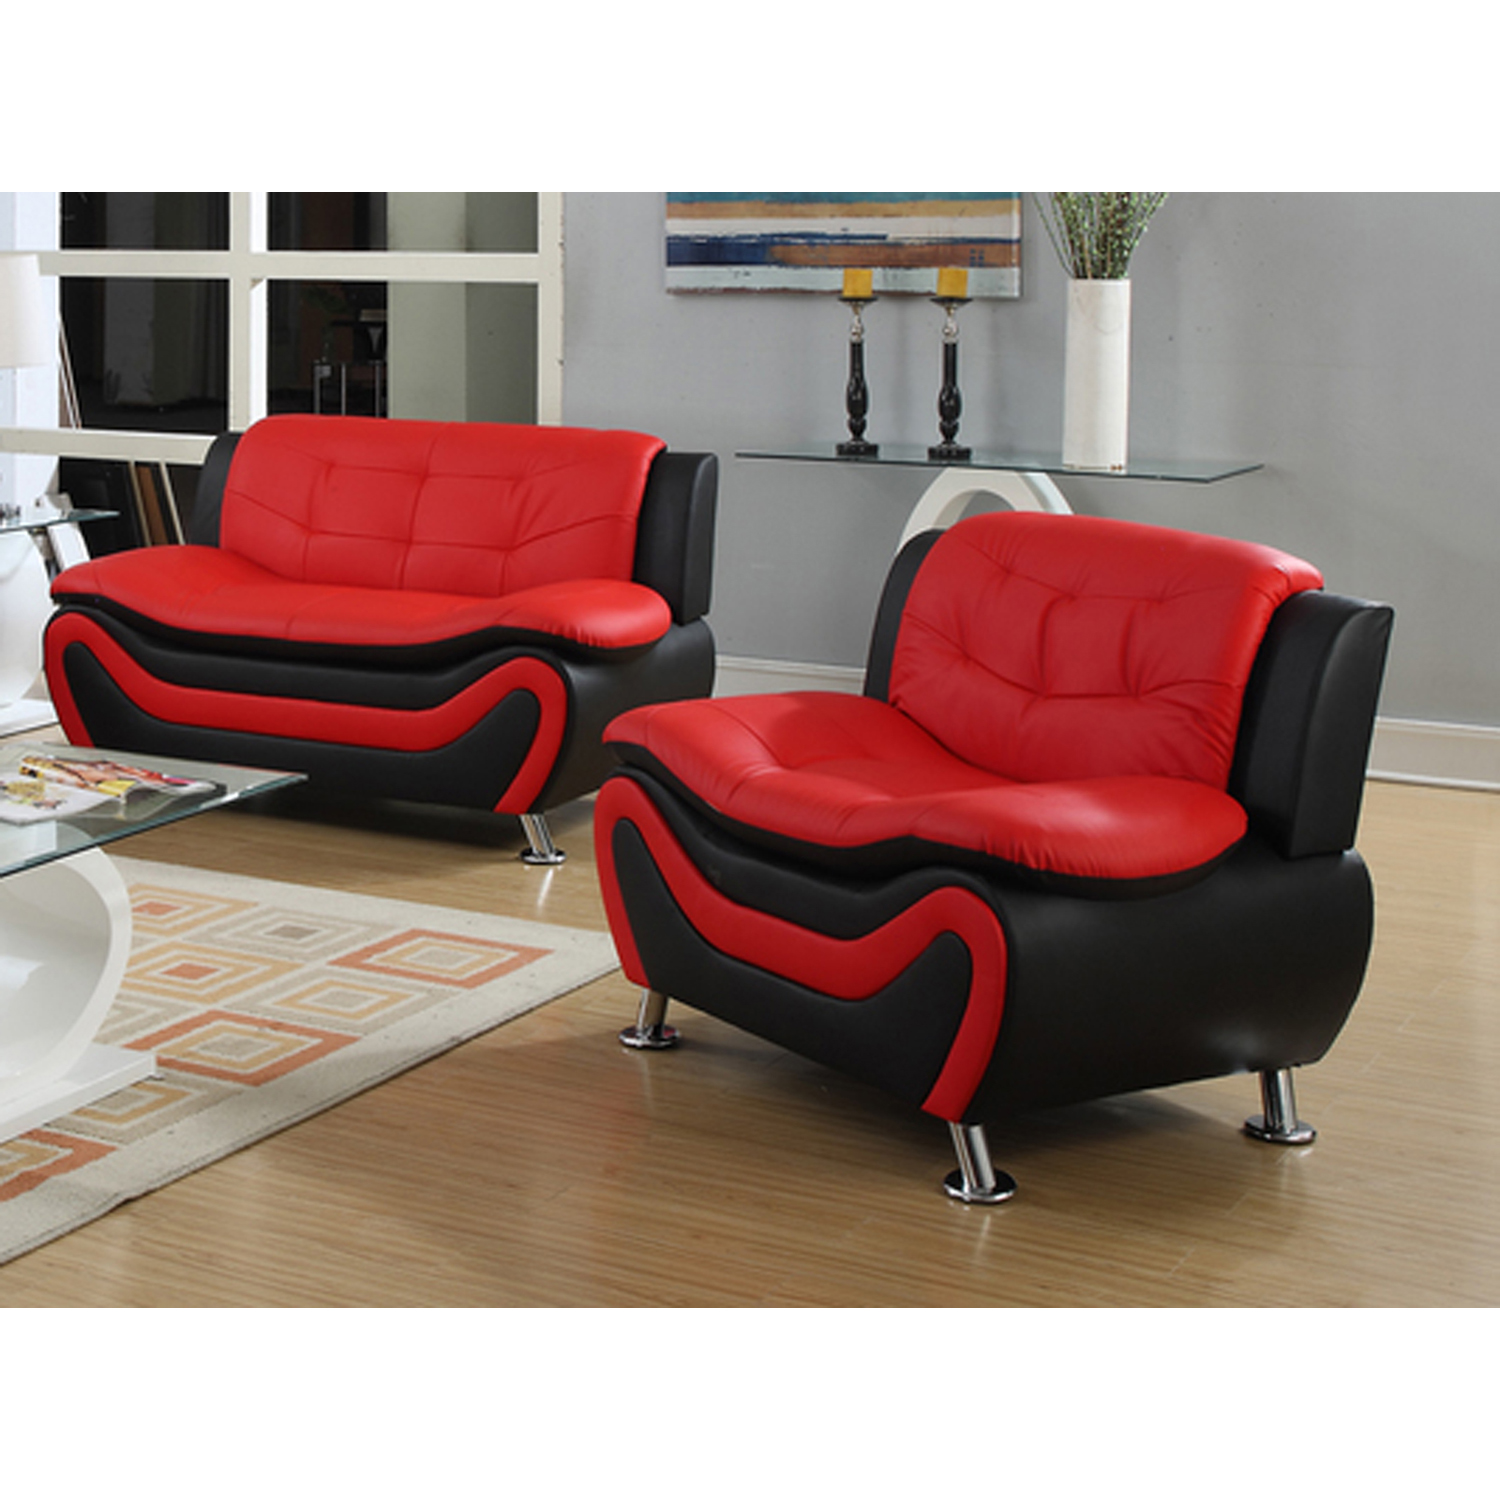 Frady Black and Red Faux Leather Modern Living Room Loveseat and Chair Set